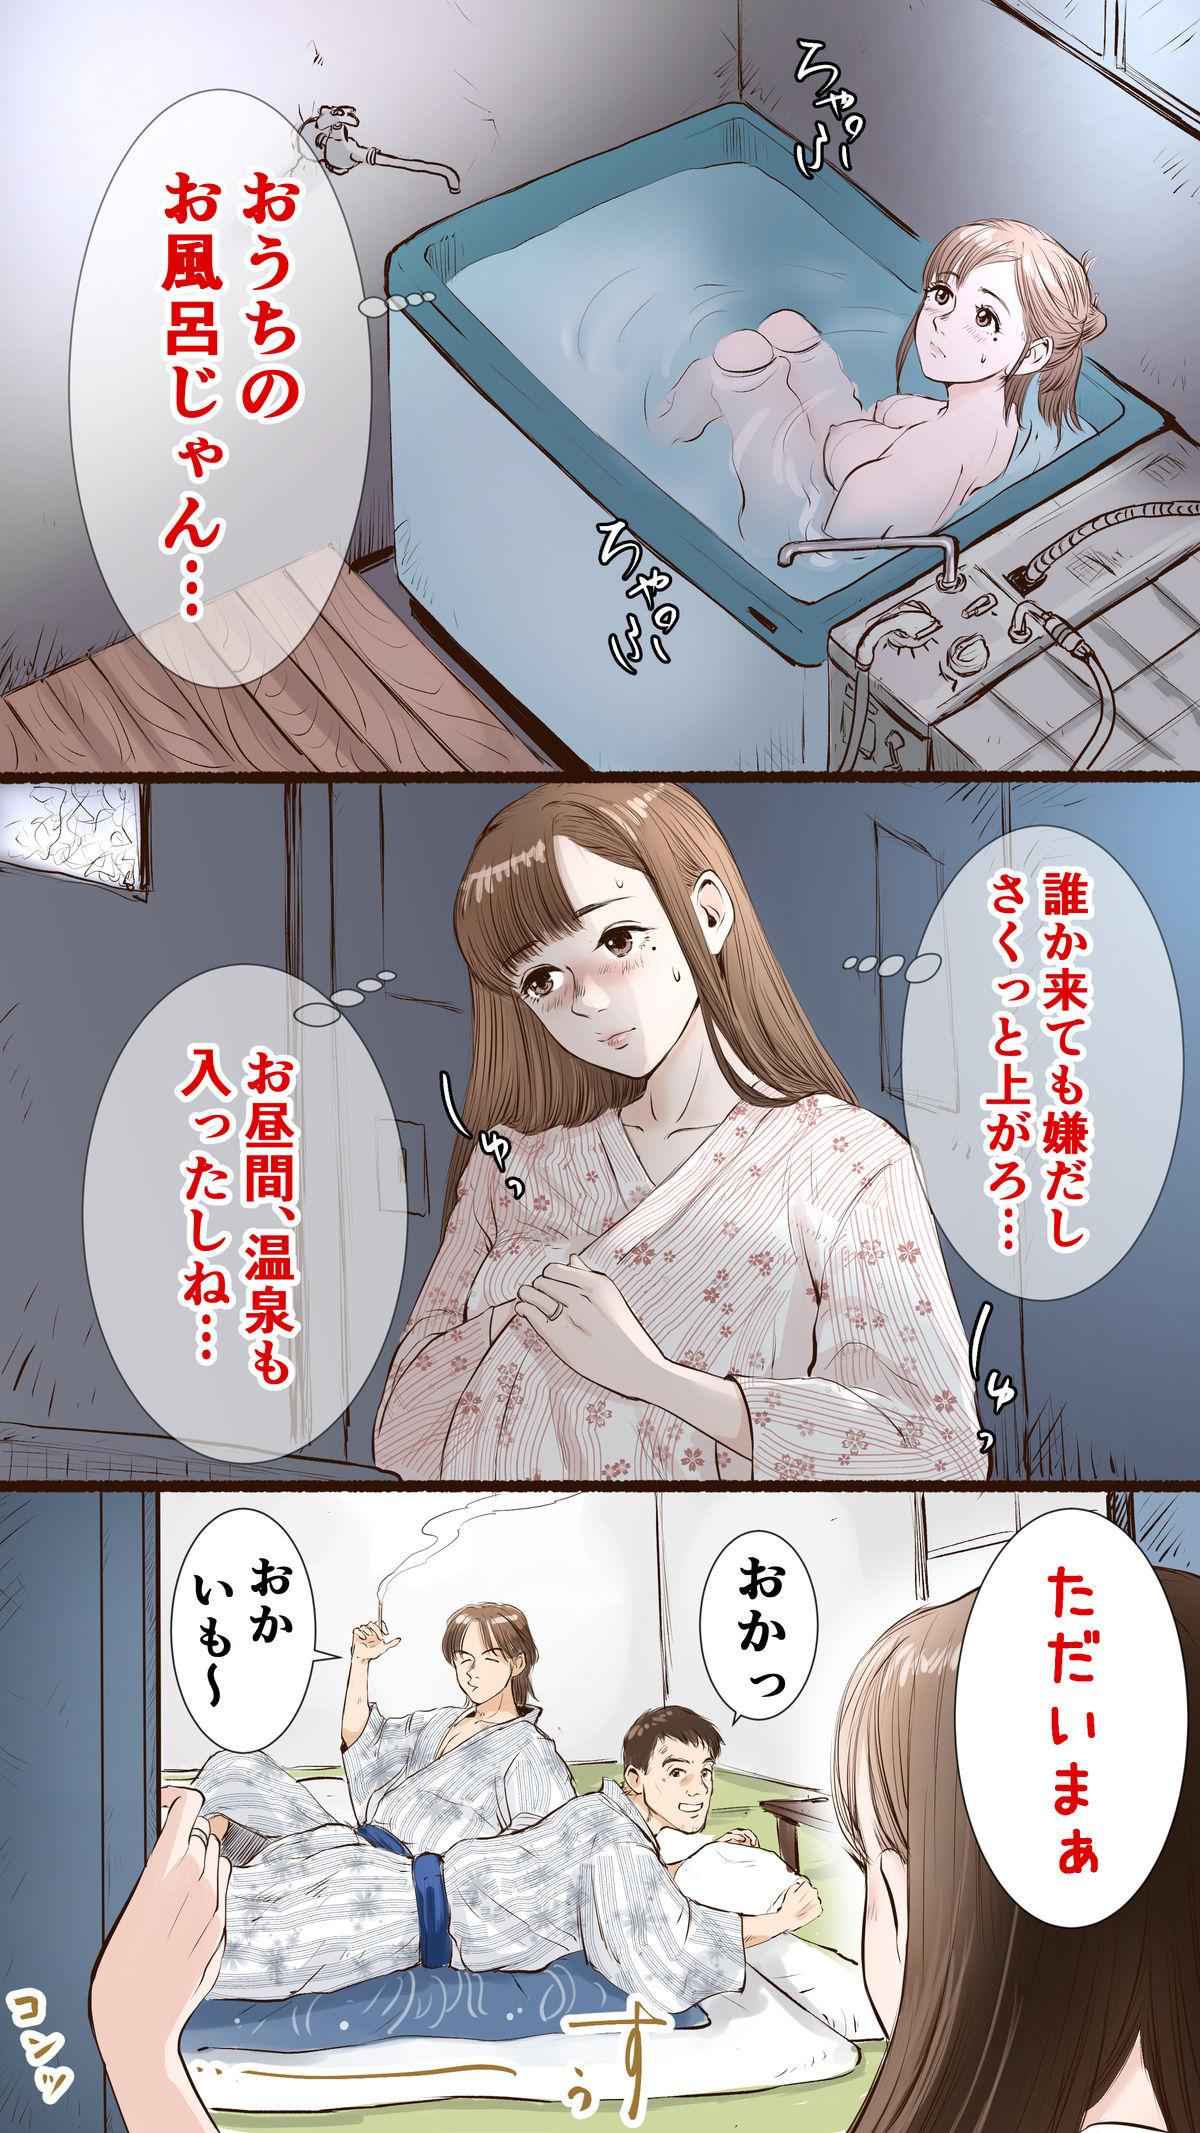 Story of Hot Spring Hotel 5